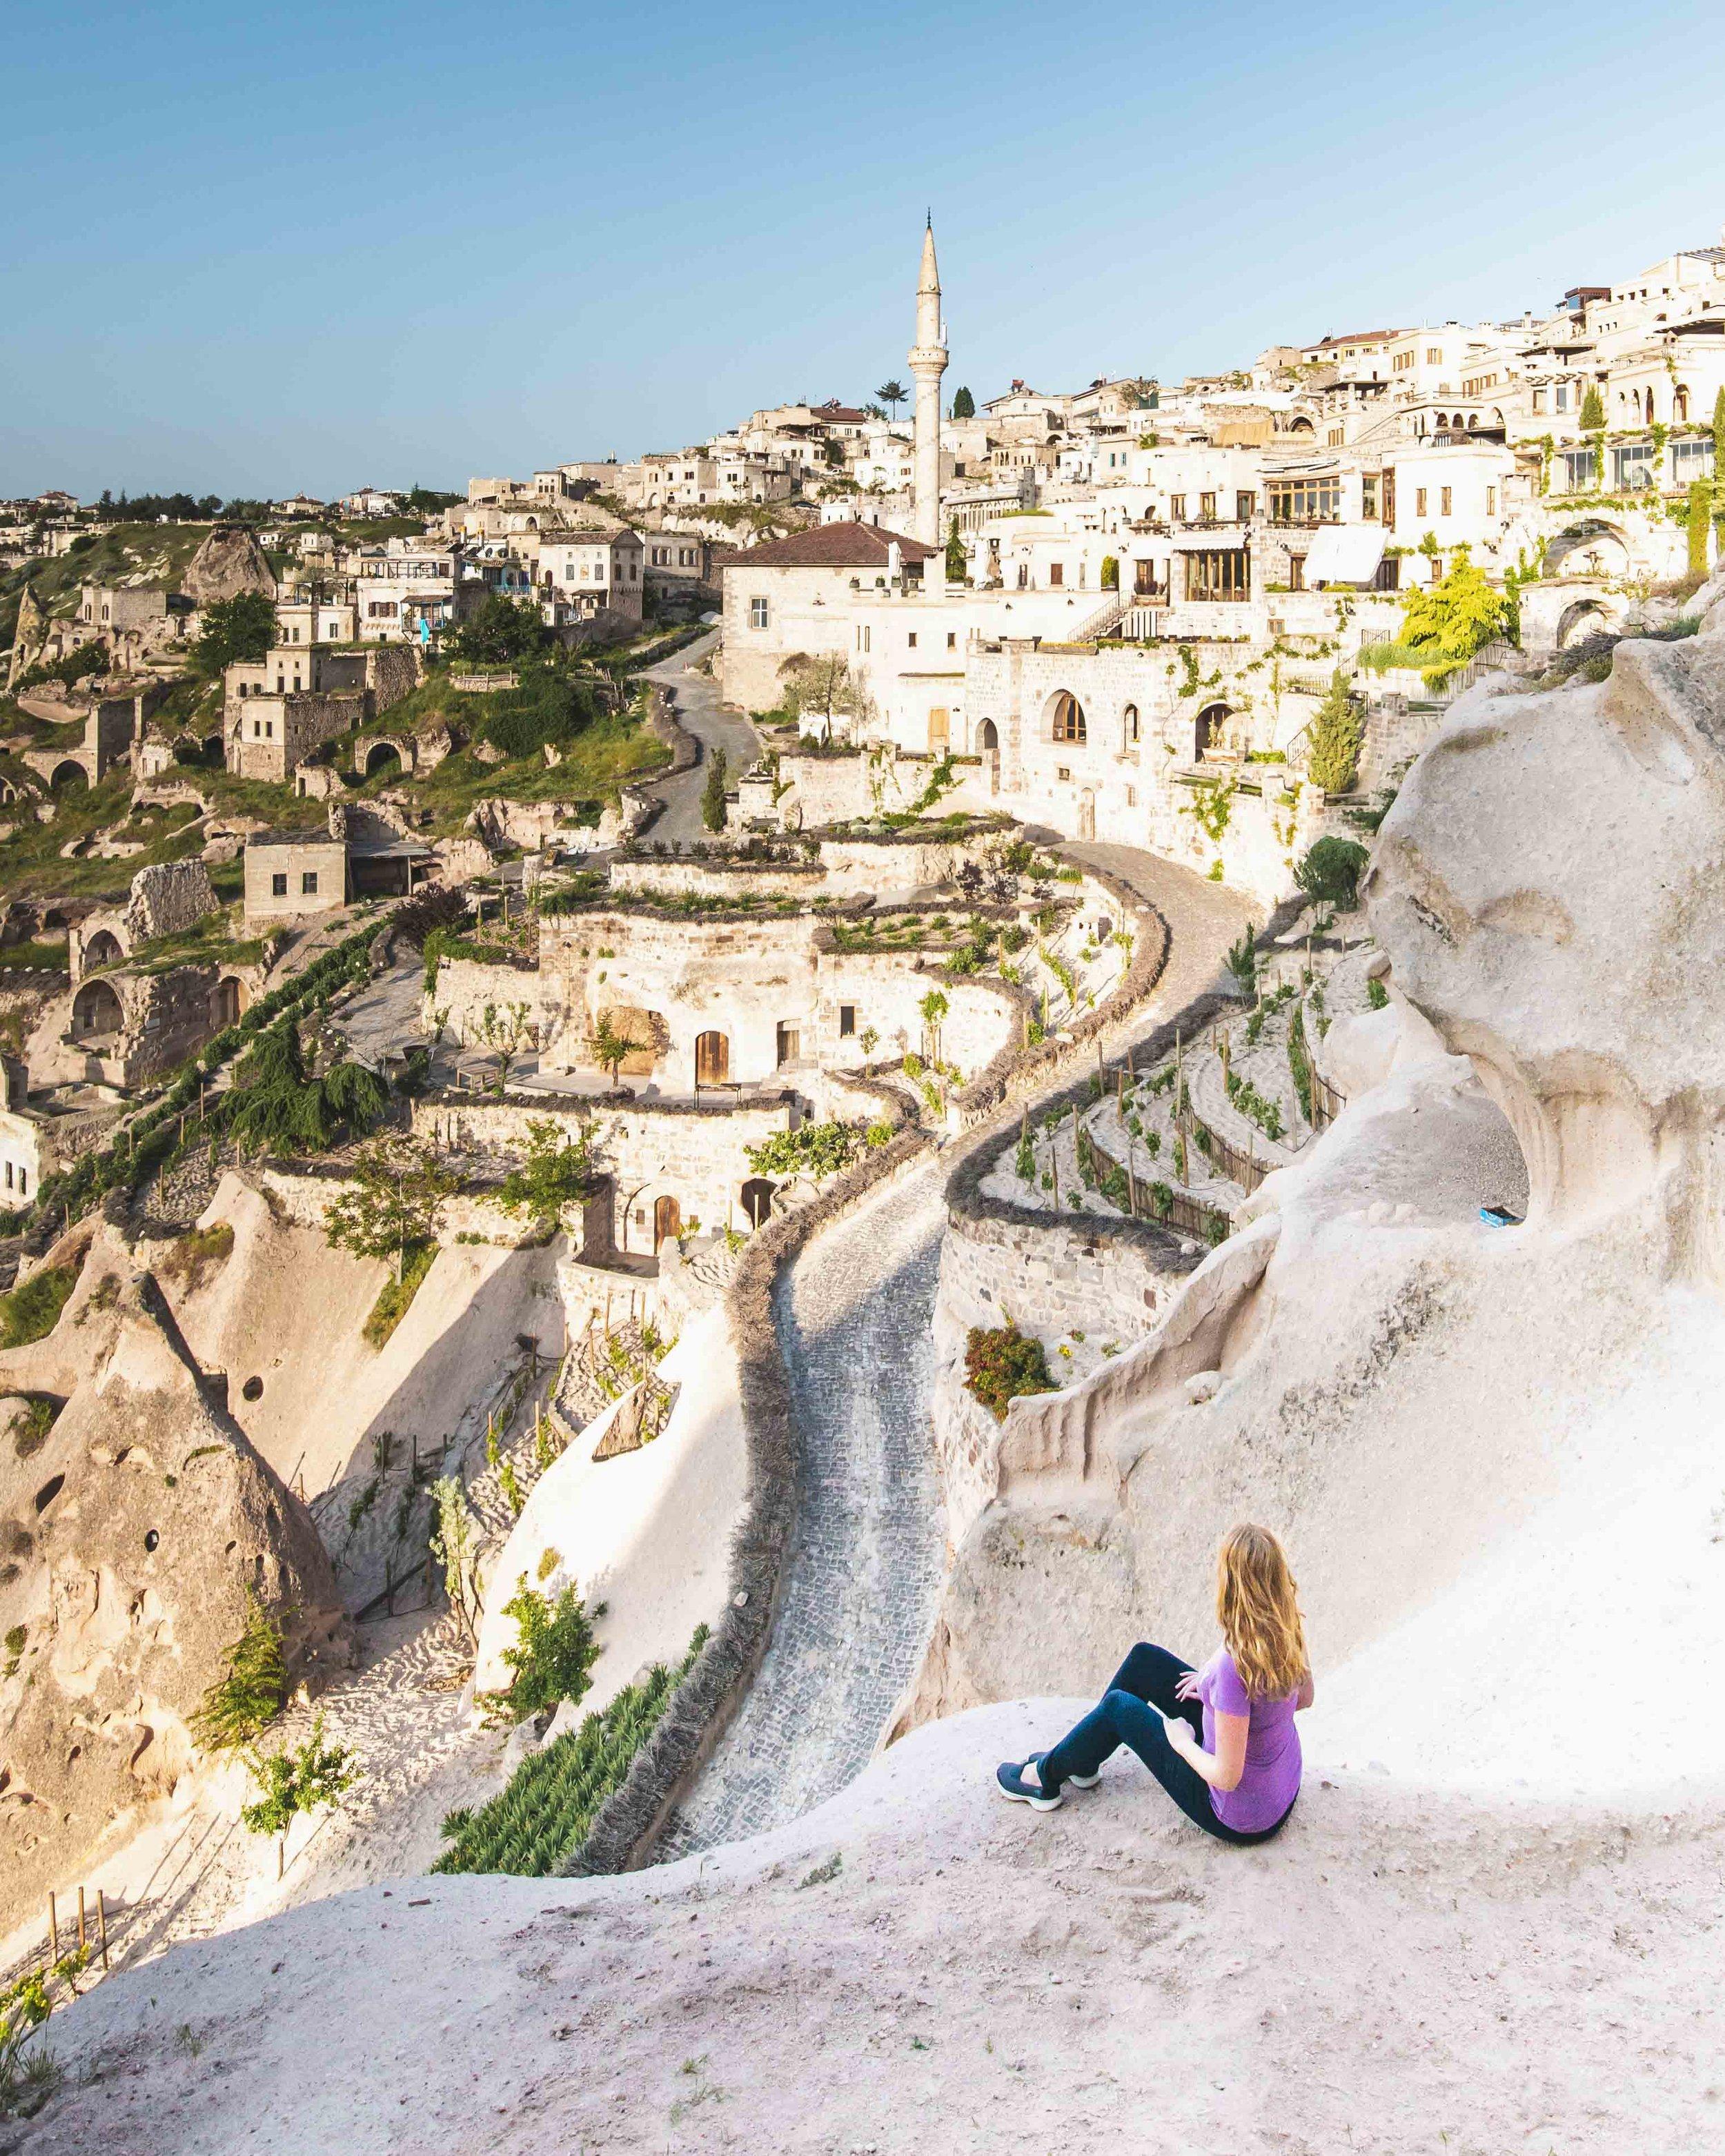 Where to stay in Uchisar - Cappadocia